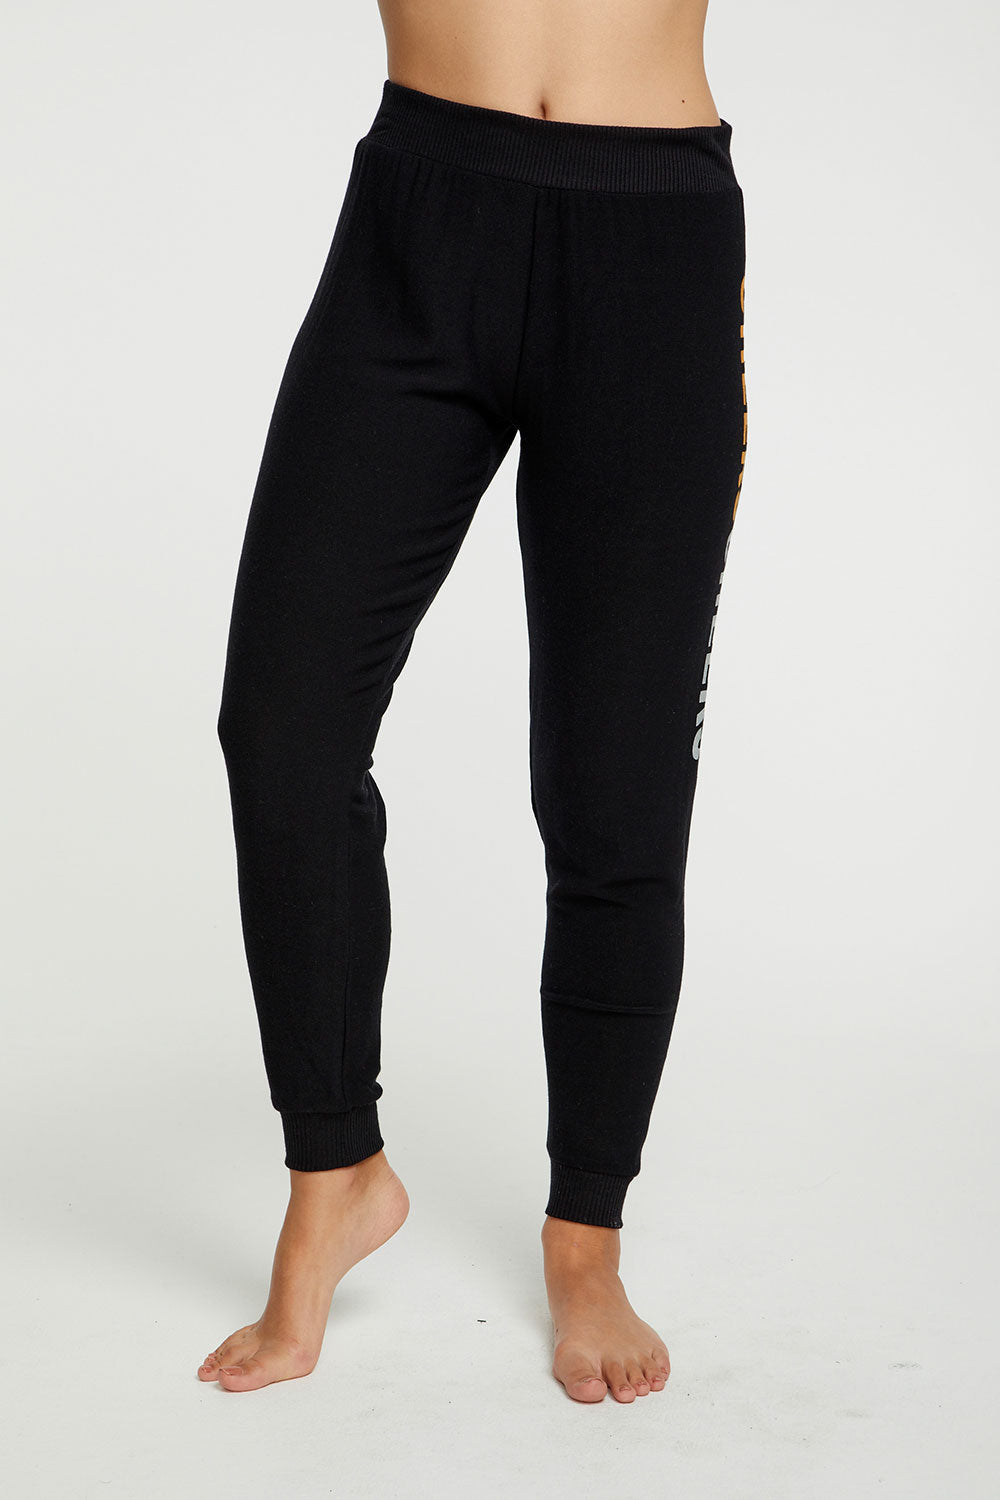 Cheers Pant WOMENS chaserbrand4.myshopify.com